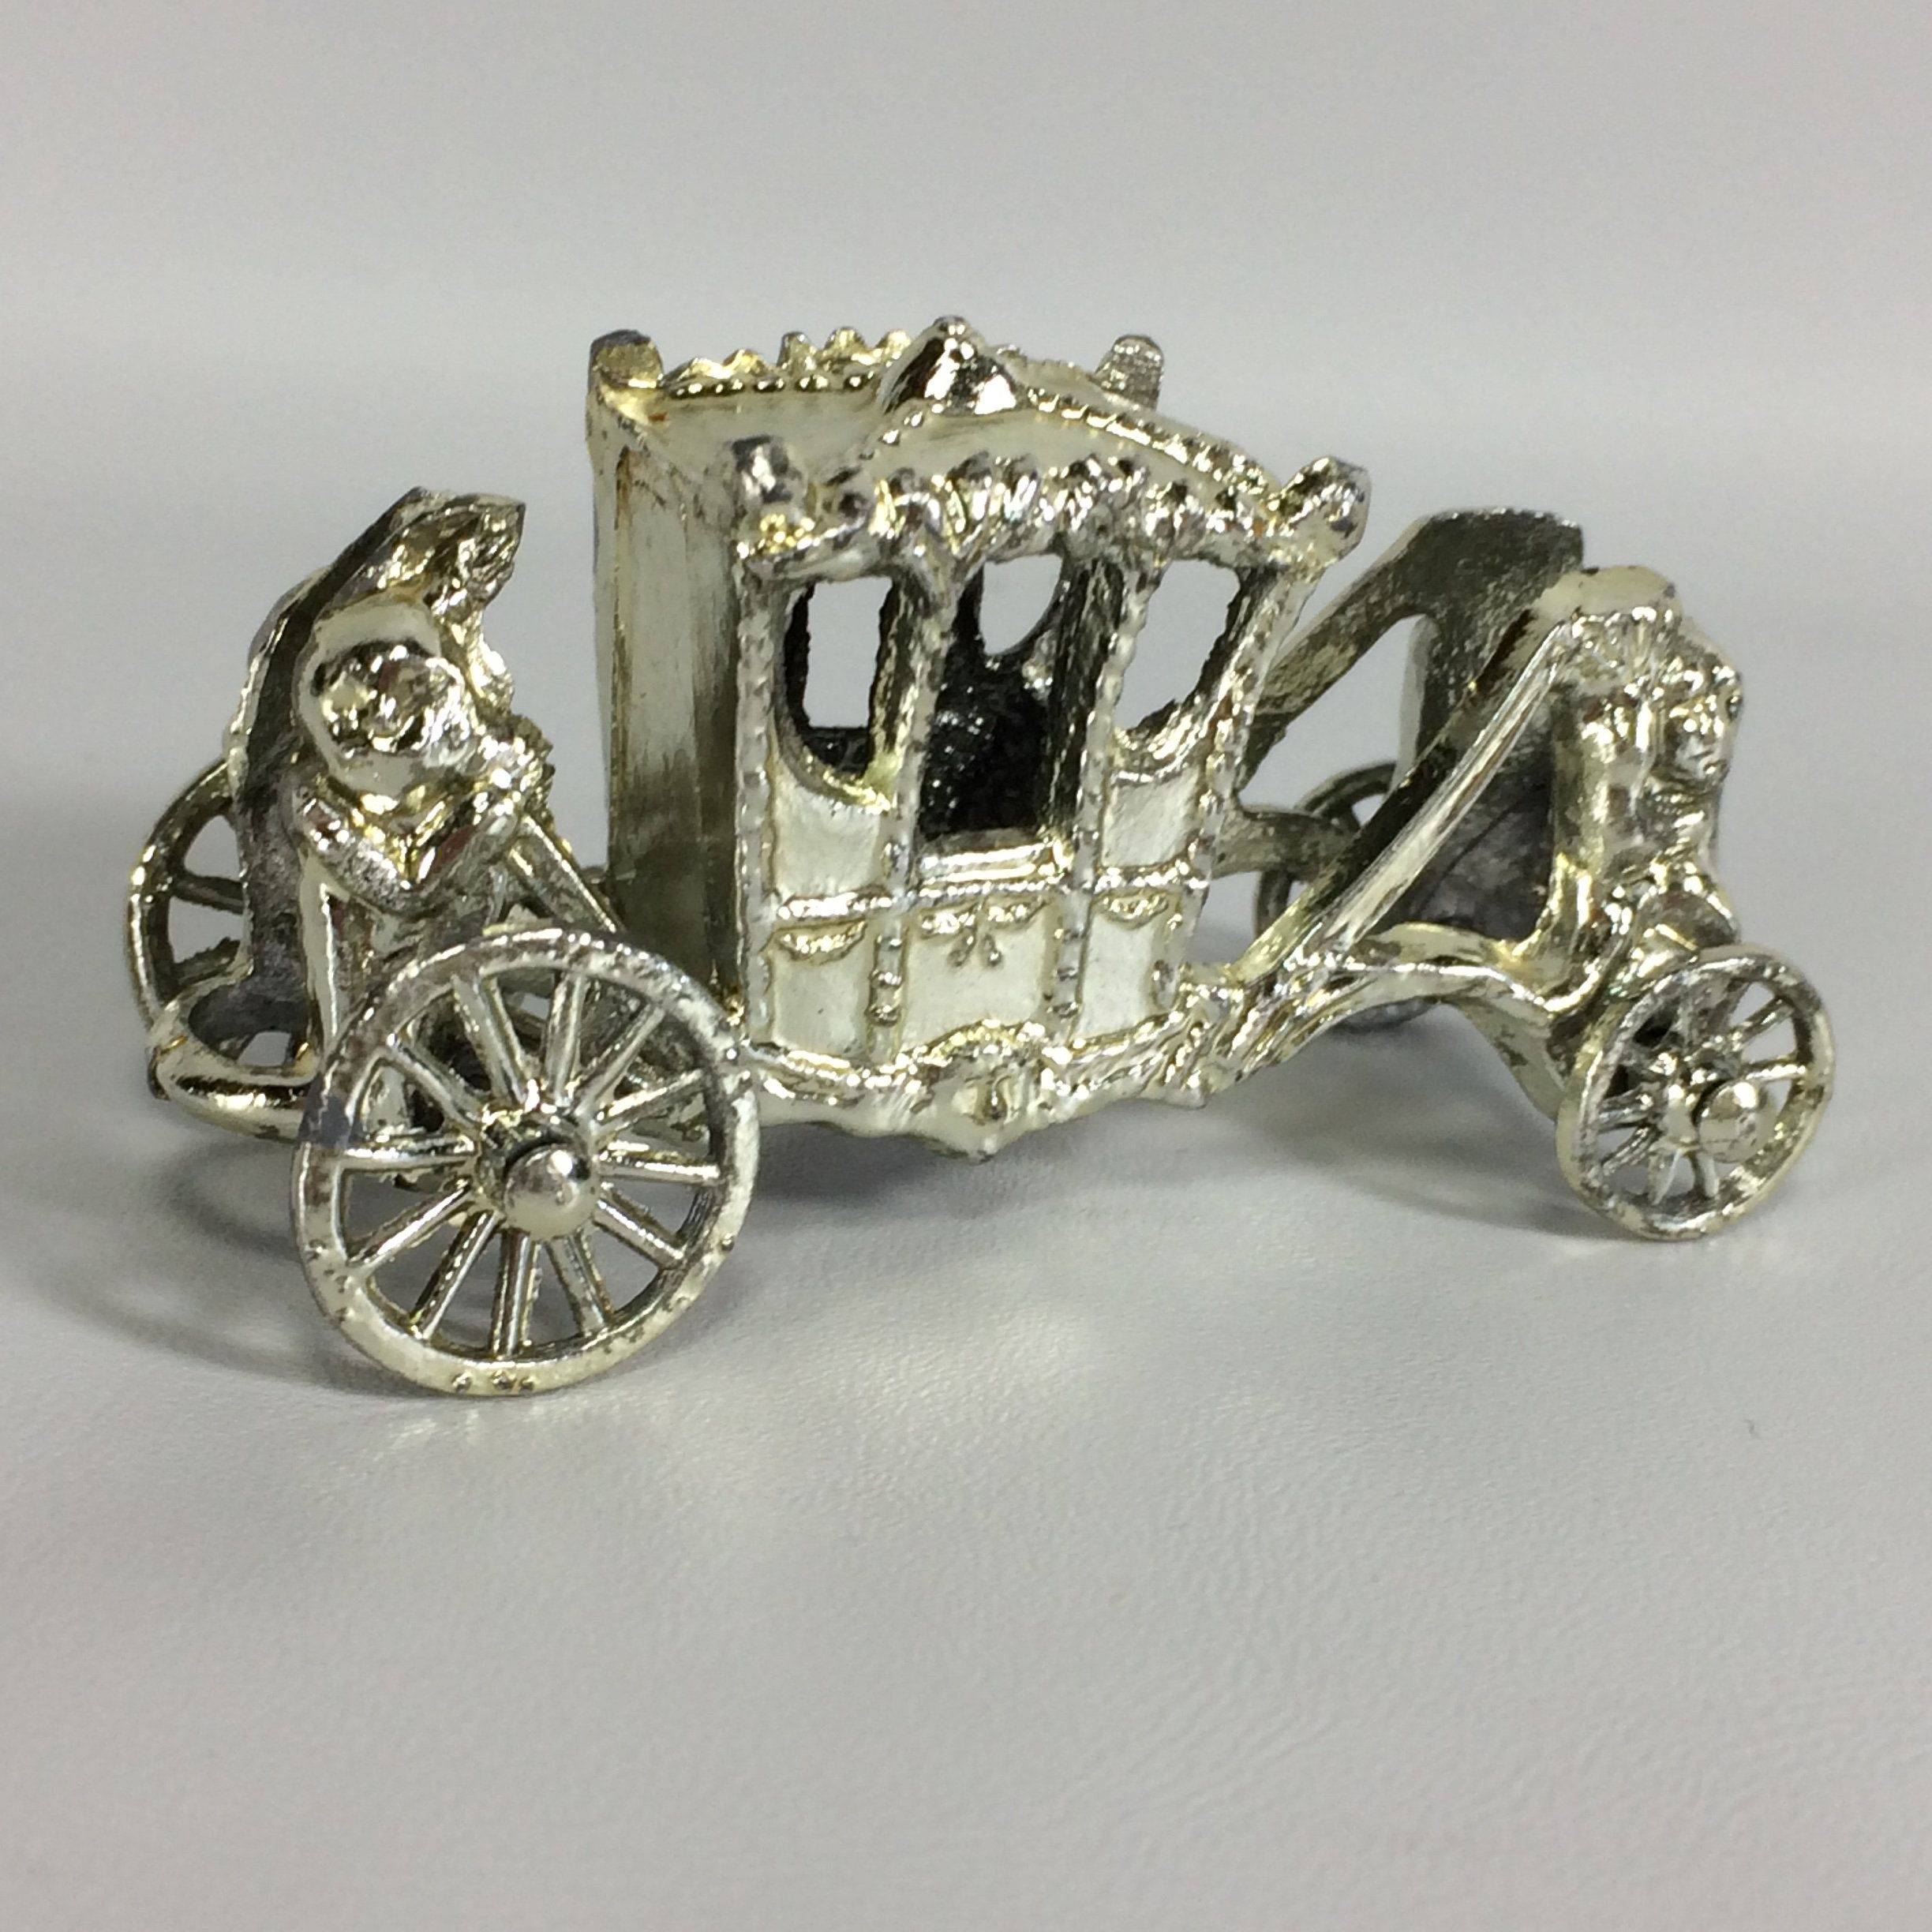 Vintage decorative metal carriage how